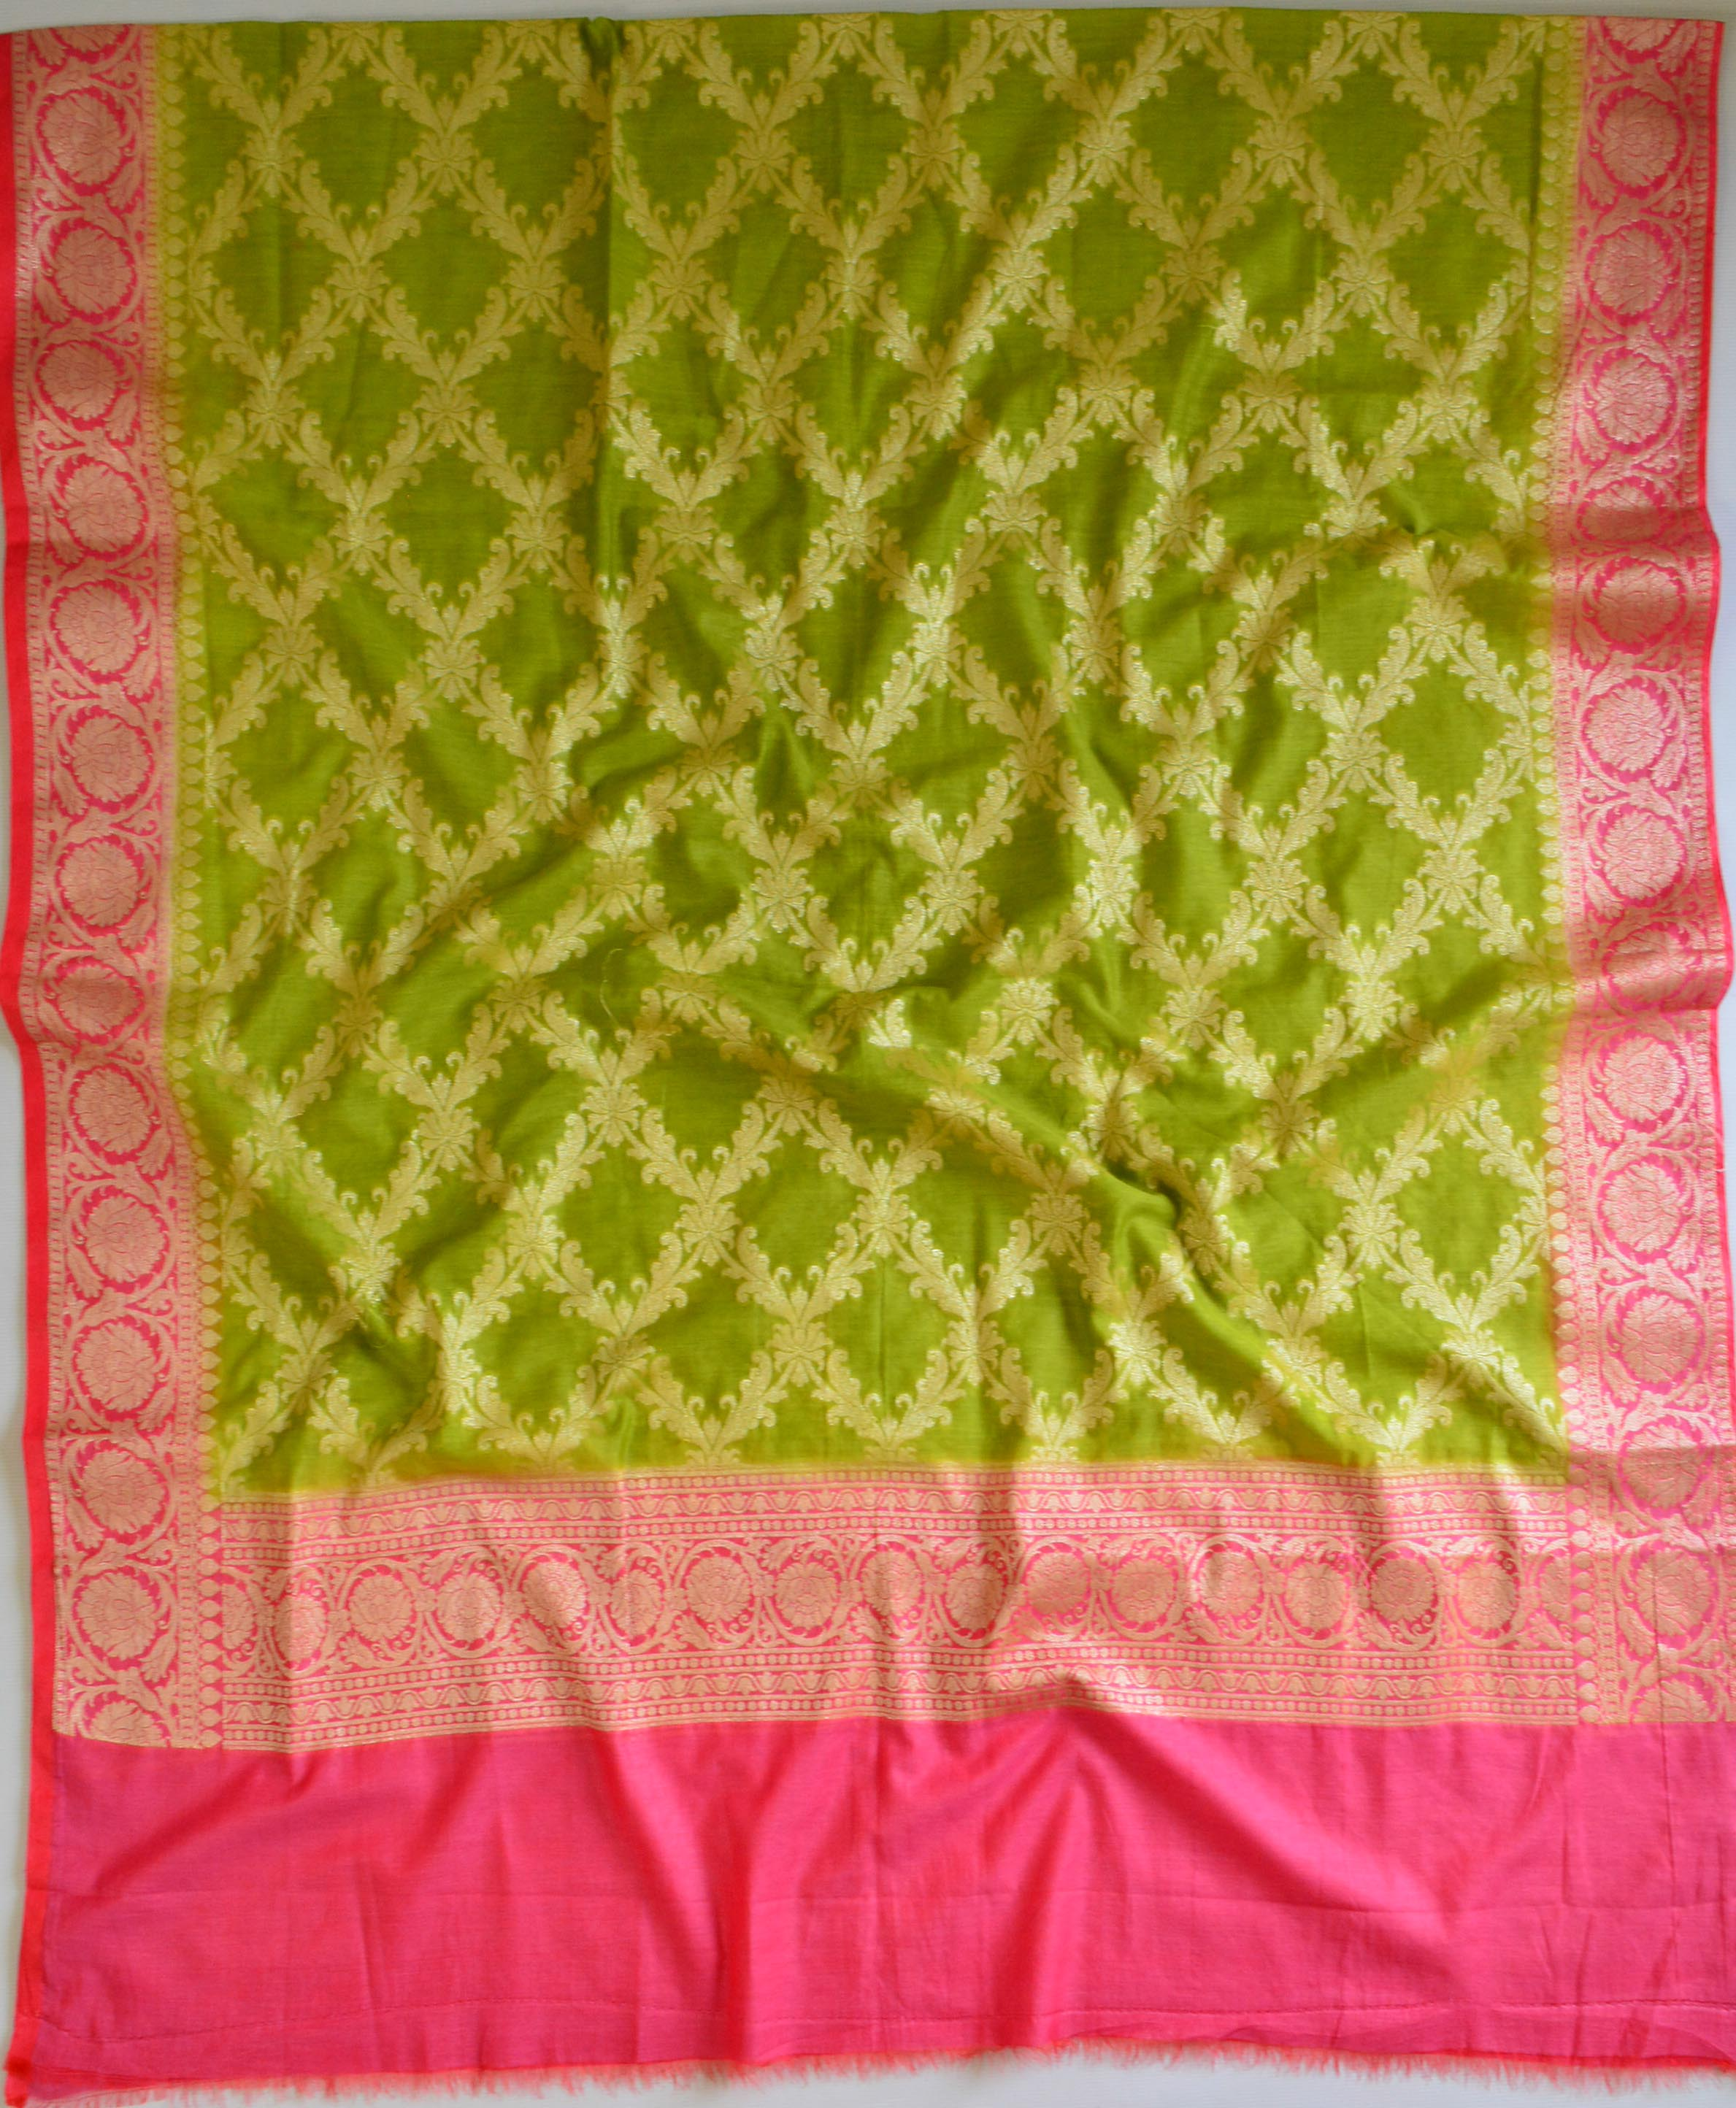 Banarasee Cotton Silk Zari Woven Salwar Kameez Dupatta Set-Green With Pink